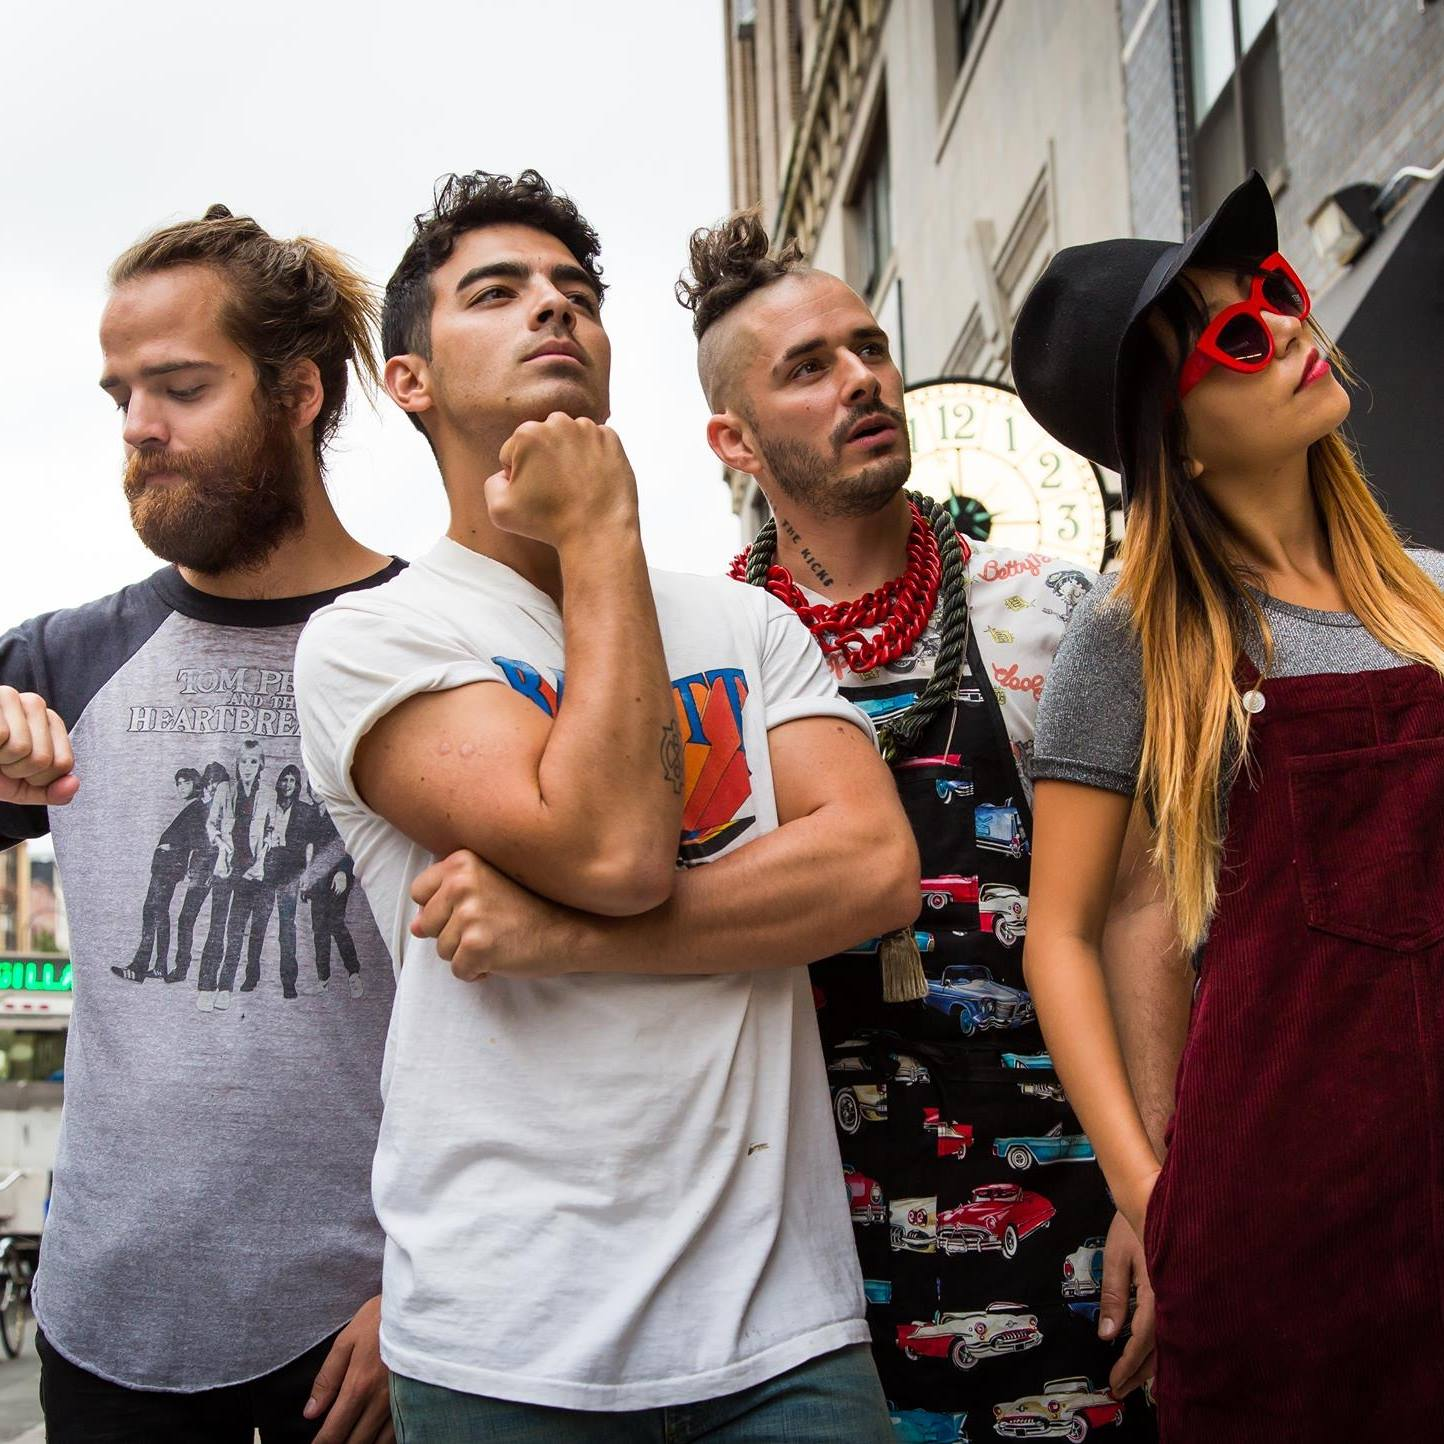 DNCE. Photo from Facebook.